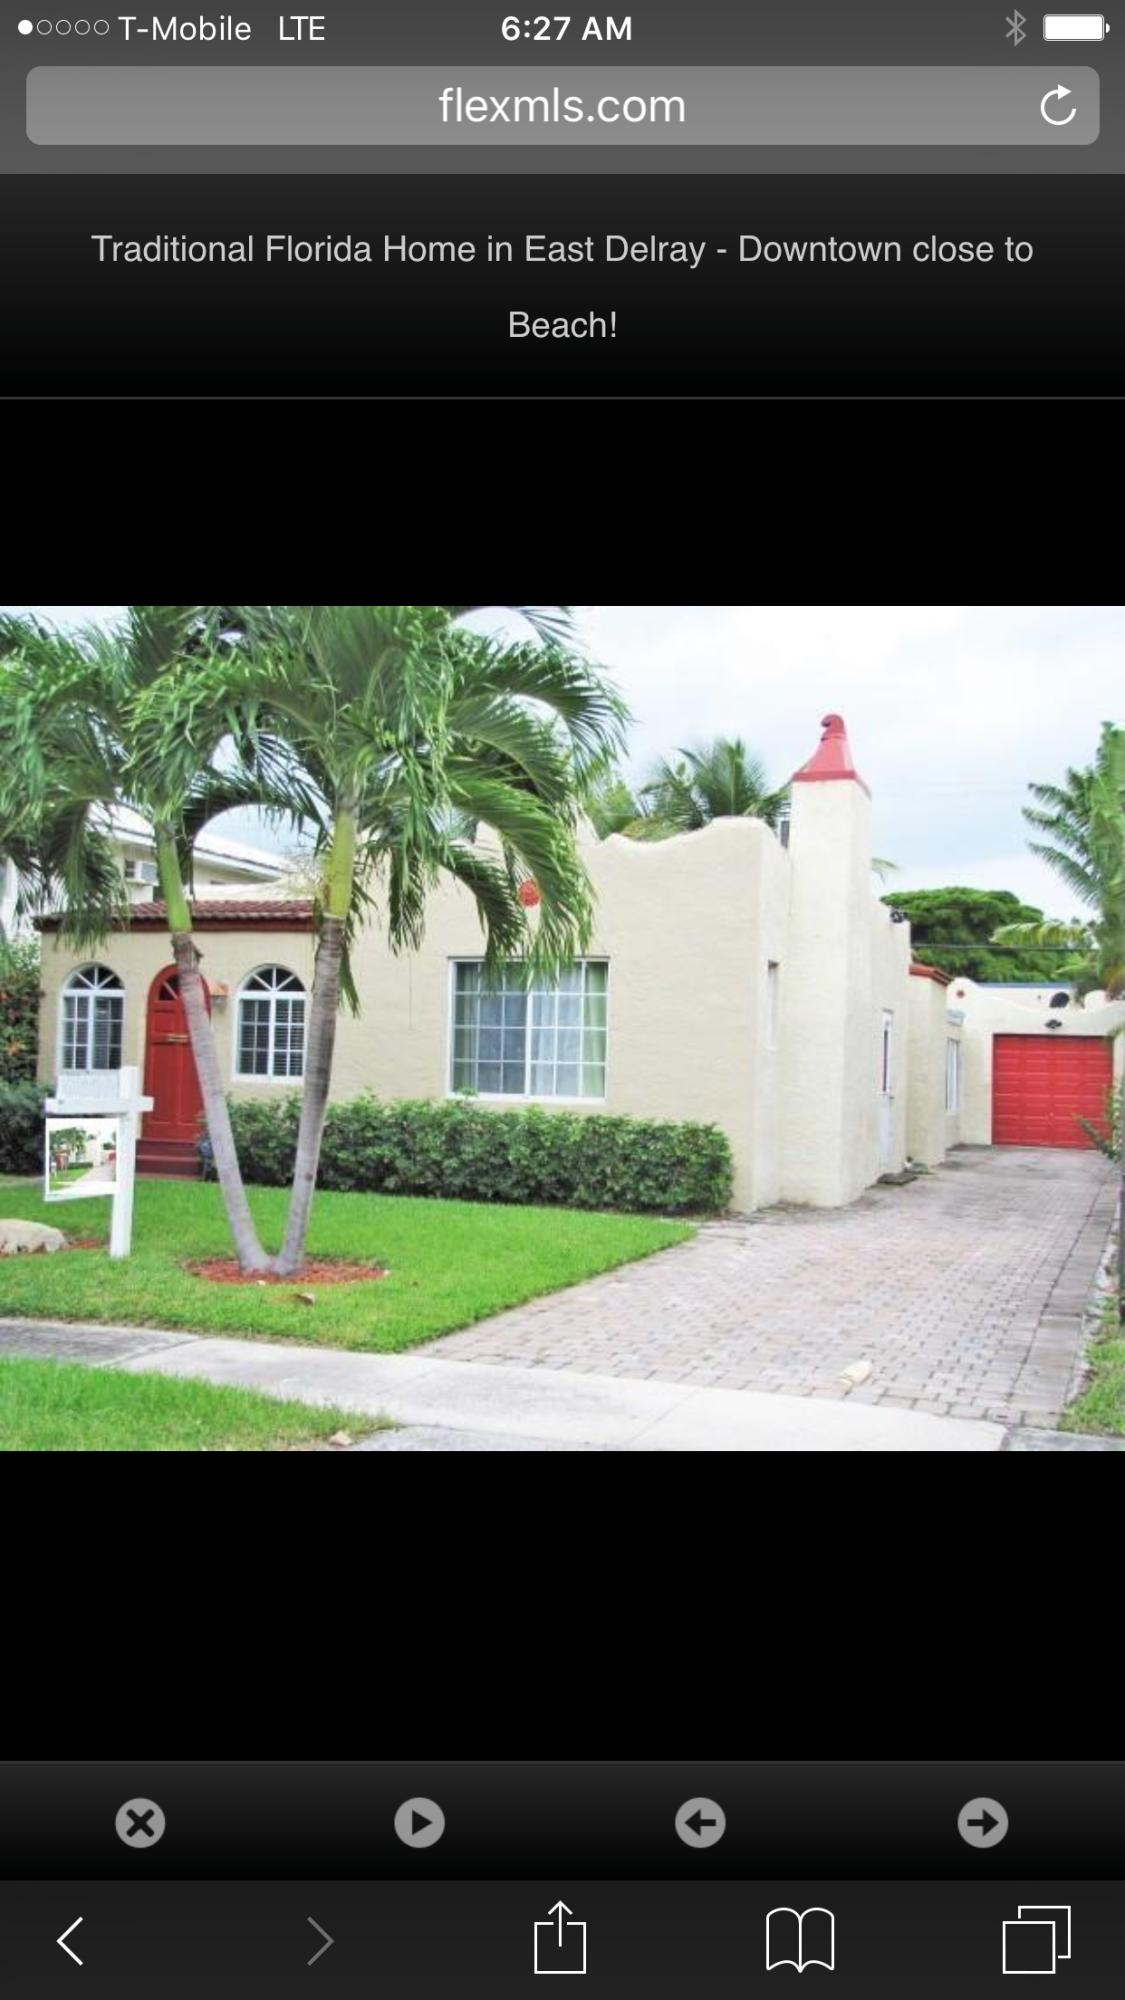 430 NE 7th Avenue  Delray Beach, FL 33483